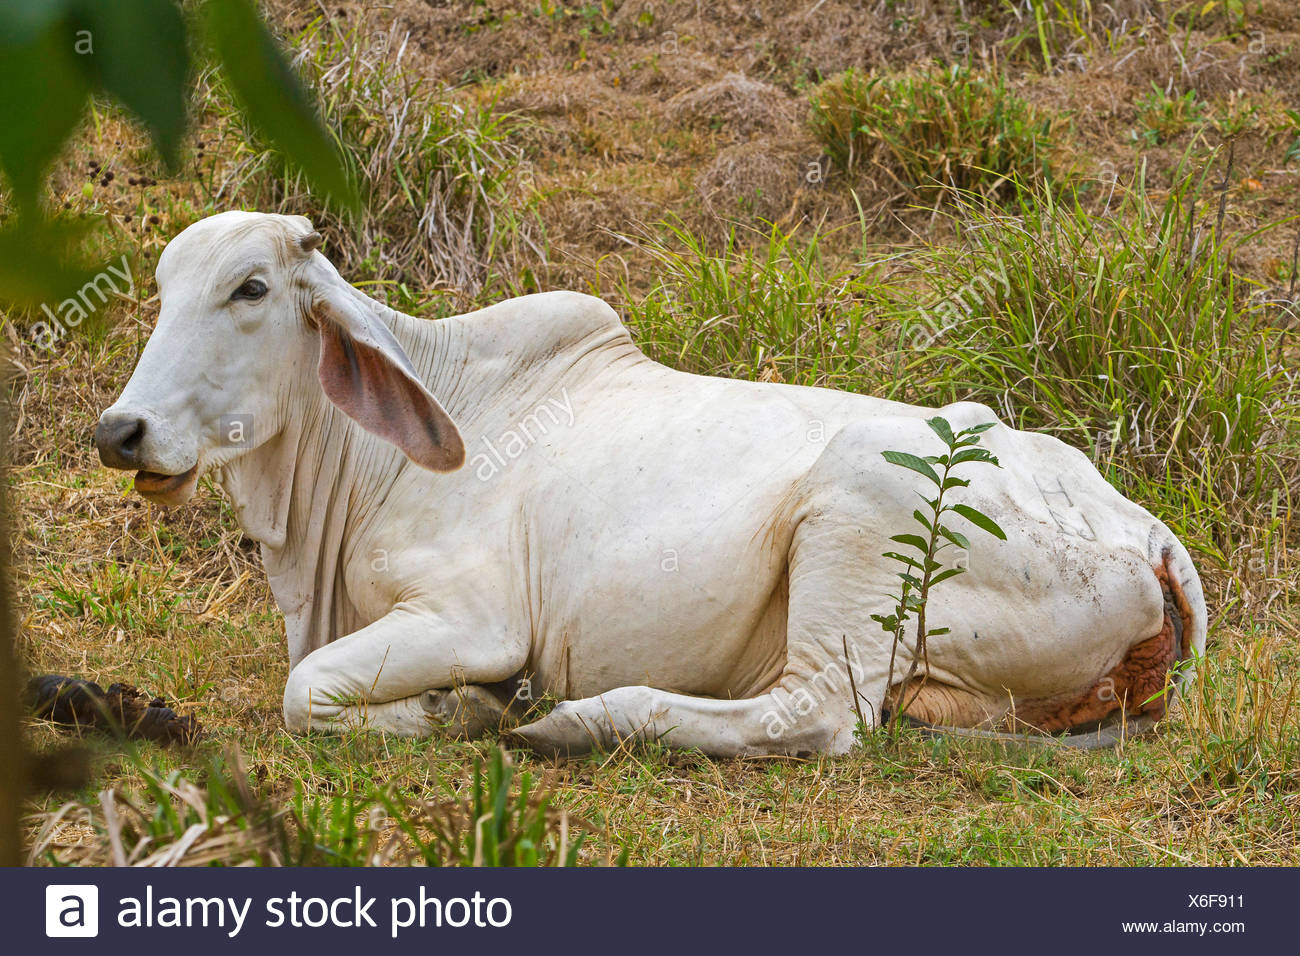 Zebu, Humped Cattle, Indicus Cattle (Bos primigenius indicus, Bos indicus), ruminating in a meadow, Costa Rica, Jaco - Stock Image